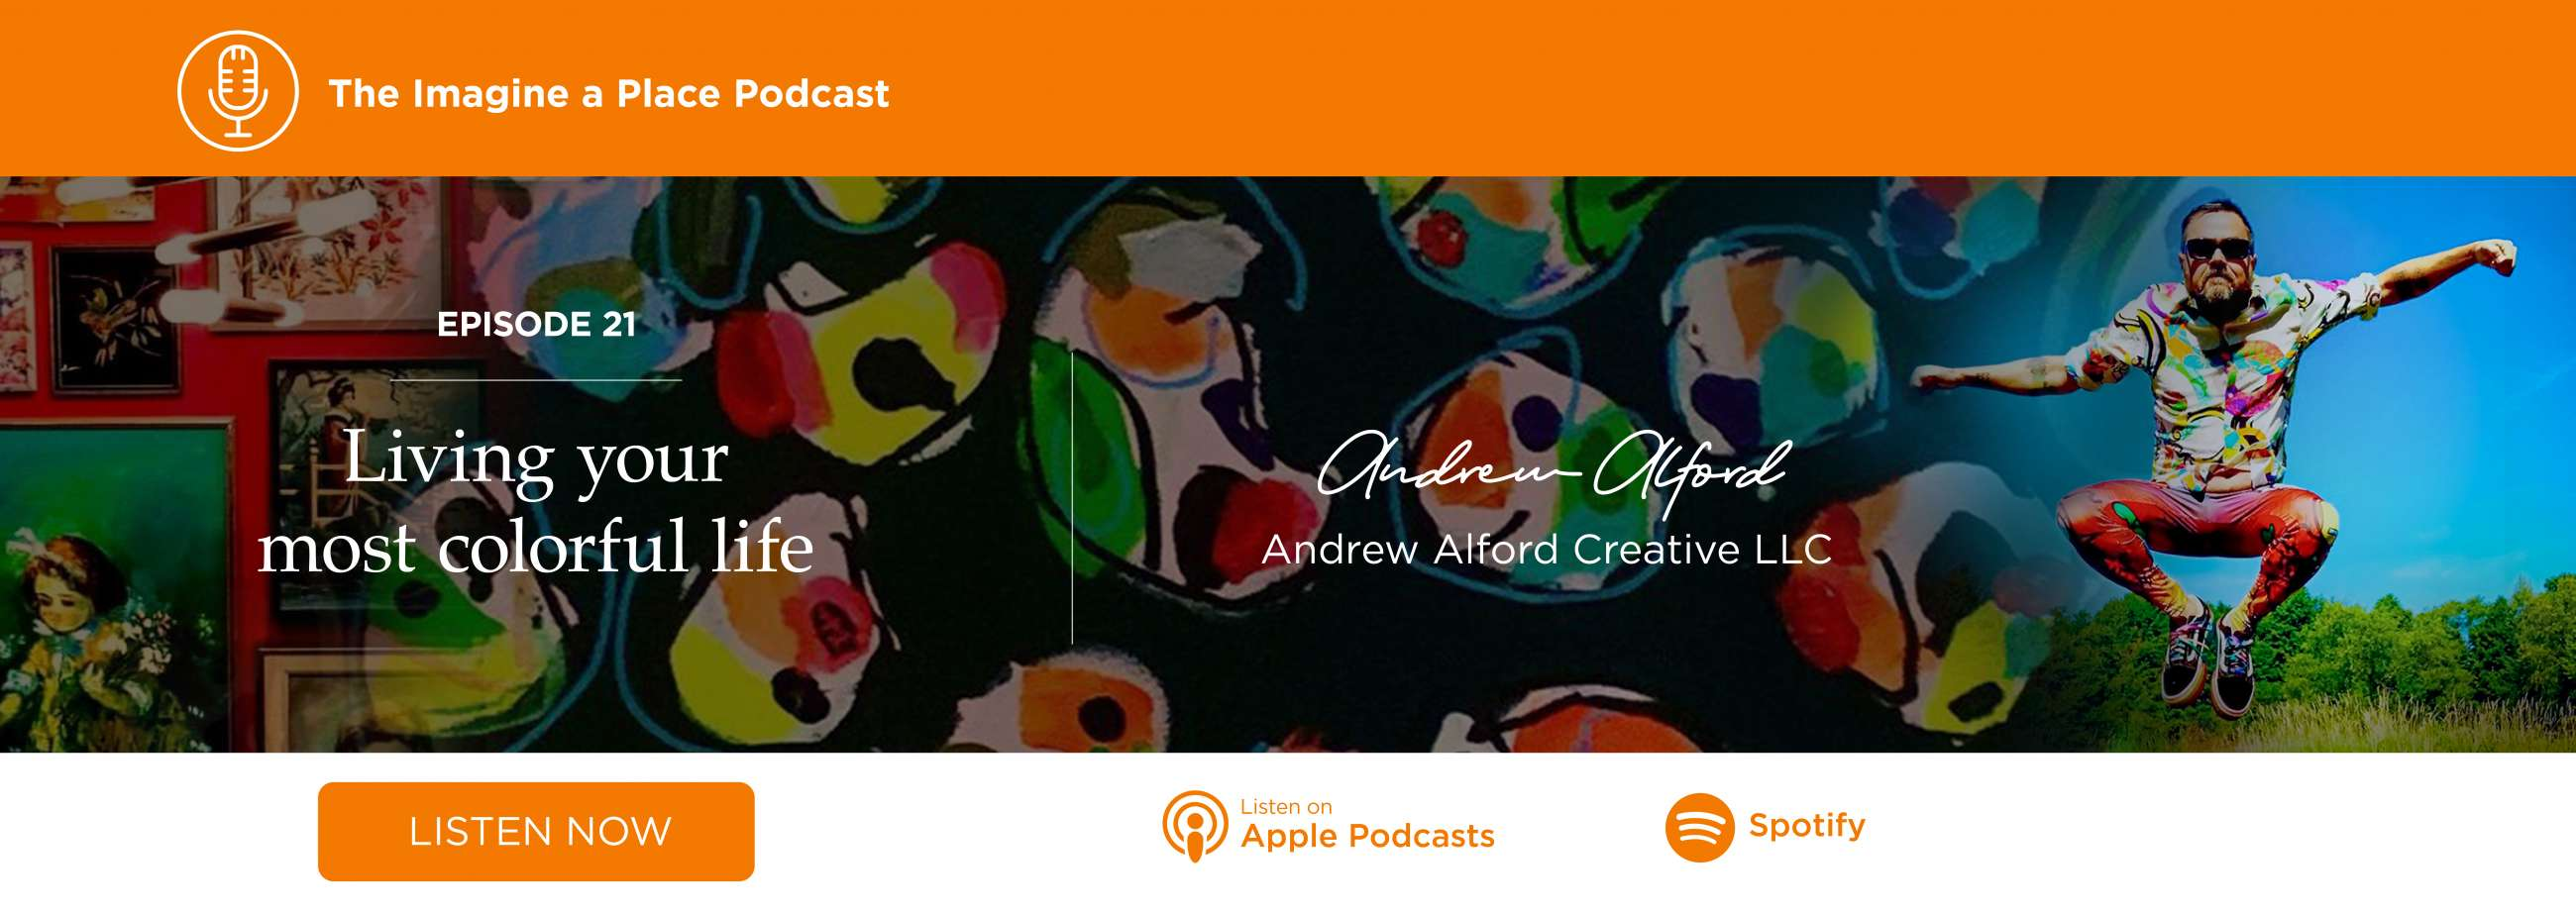 Imagine a Place Podcast with Andrew Alford